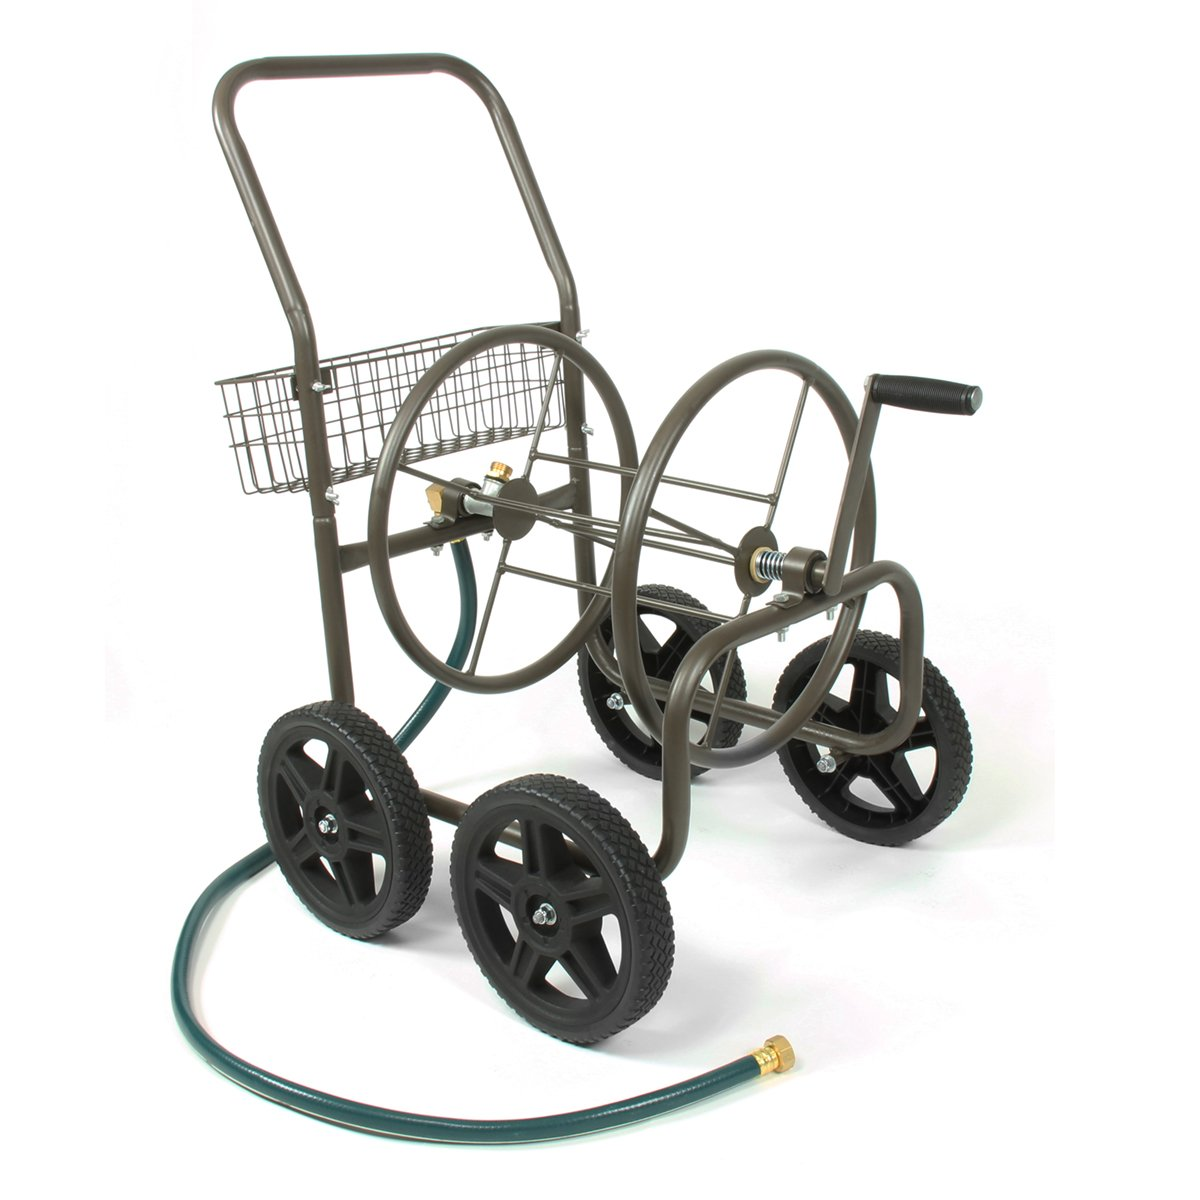 Liberty Garden 871-S Residential Grade 4-Wheel Garden Hose Reel Cart, Holds 250-Feet of 5/8-Inch Hose - Bronze by Liberty Garden Products